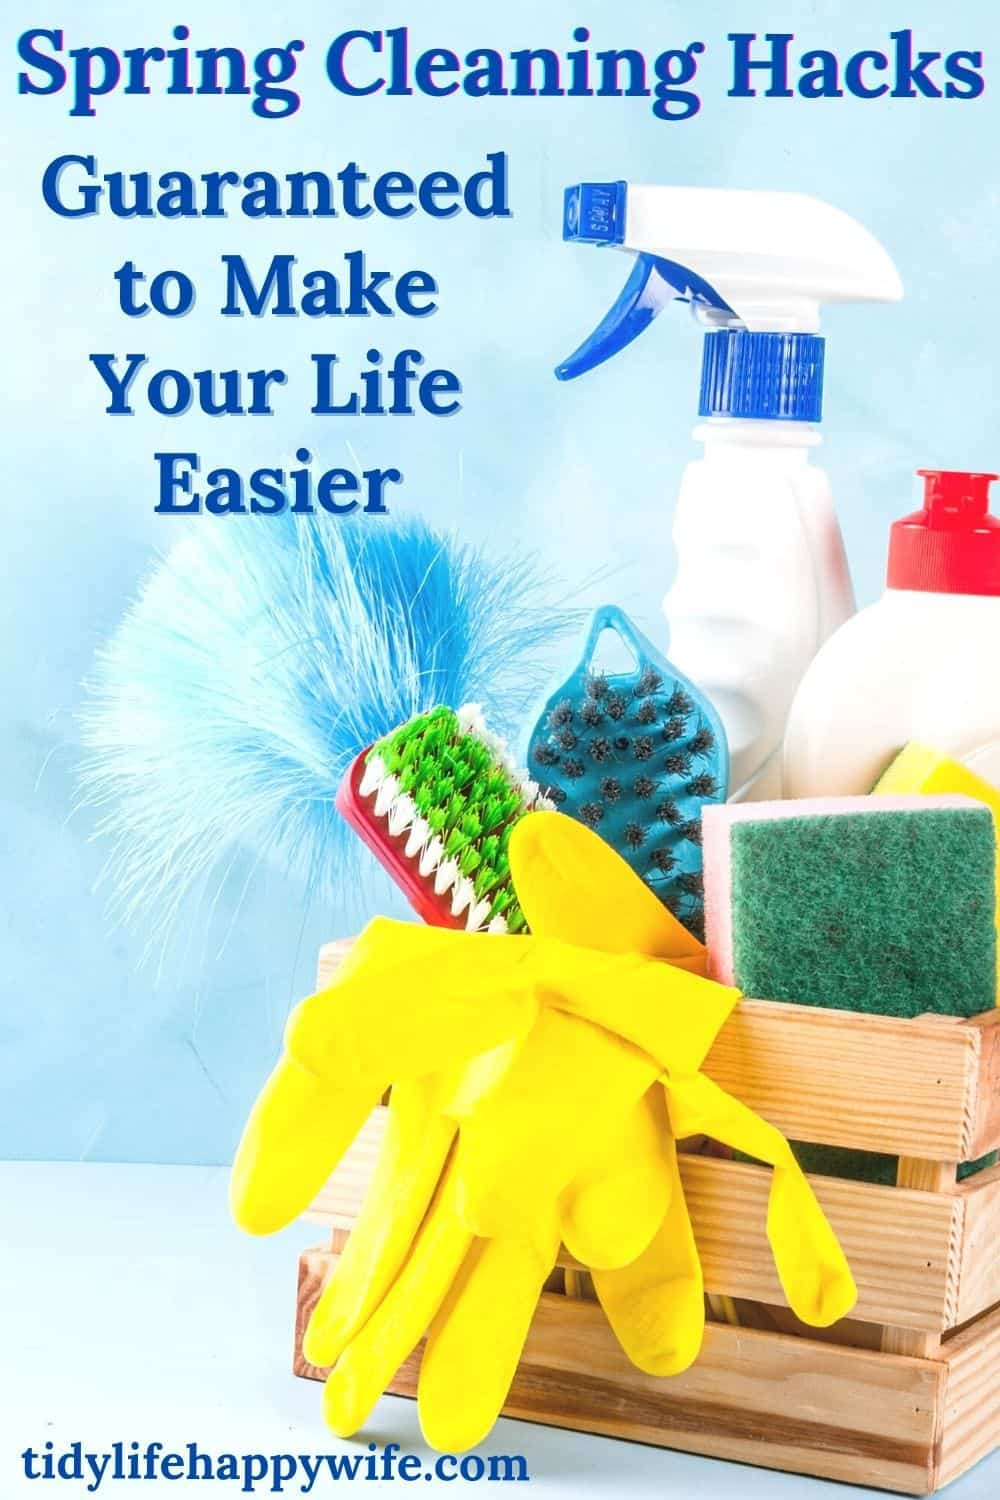 Spring is here, and it's time to get busy cleaning. Here are some brilliant spring cleaning hacks to help you mark those tasks off of that spring cleaning checklist. Tips and tricks to make the most dreaded cleaning chores a bit quicker and easier. Simple ways to clean the ceiling, walls, floors, and so much more. via @Tidylifehappywife